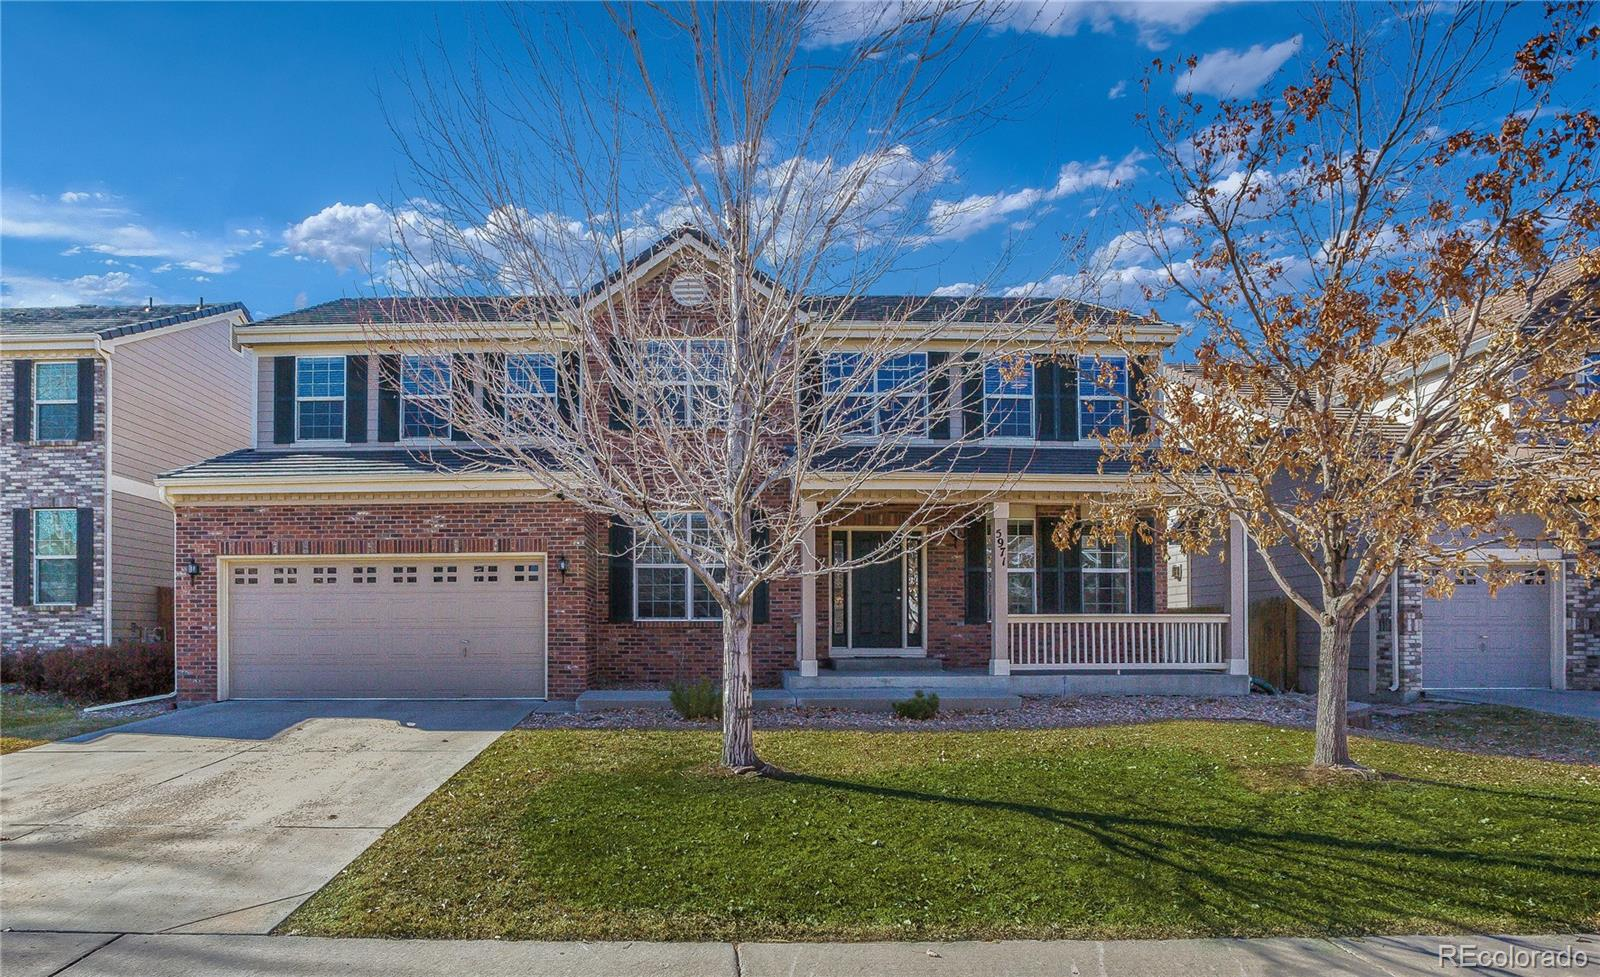 MLS# 6938422 - 2 - 5971 S Helena Court, Centennial, CO 80016